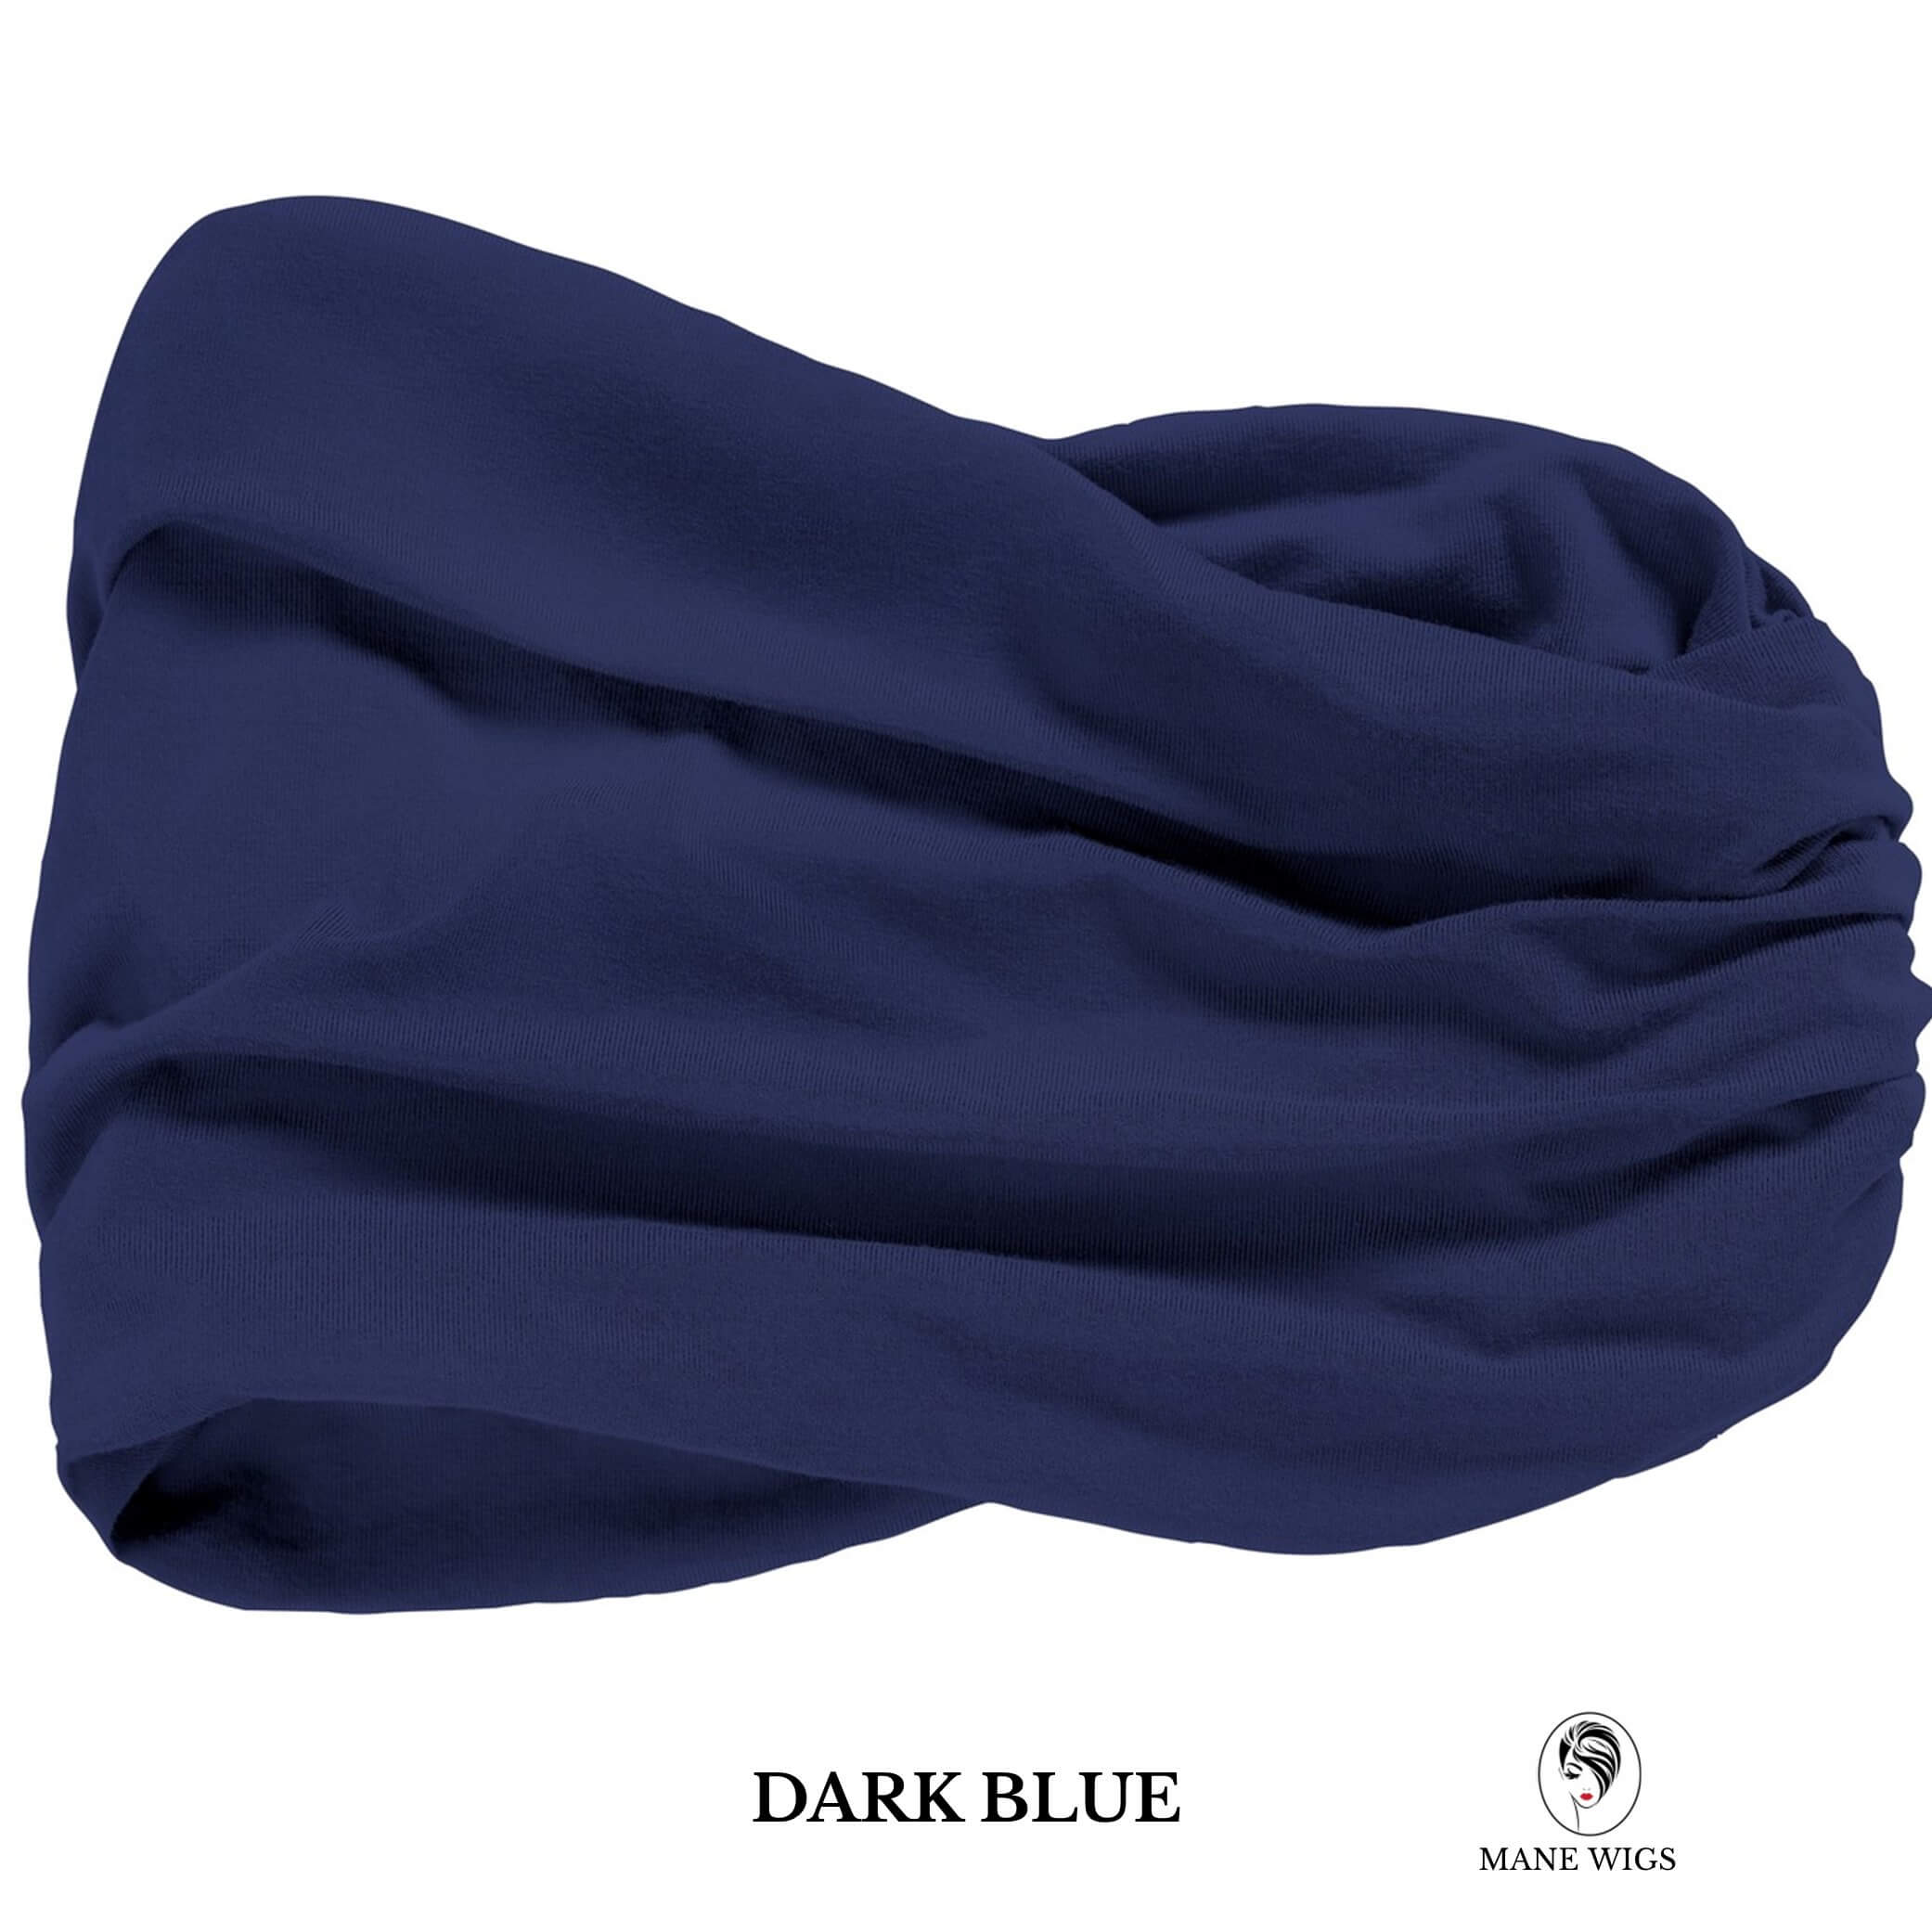 Christine Headwear Chitta Headband 255-Dark Blue